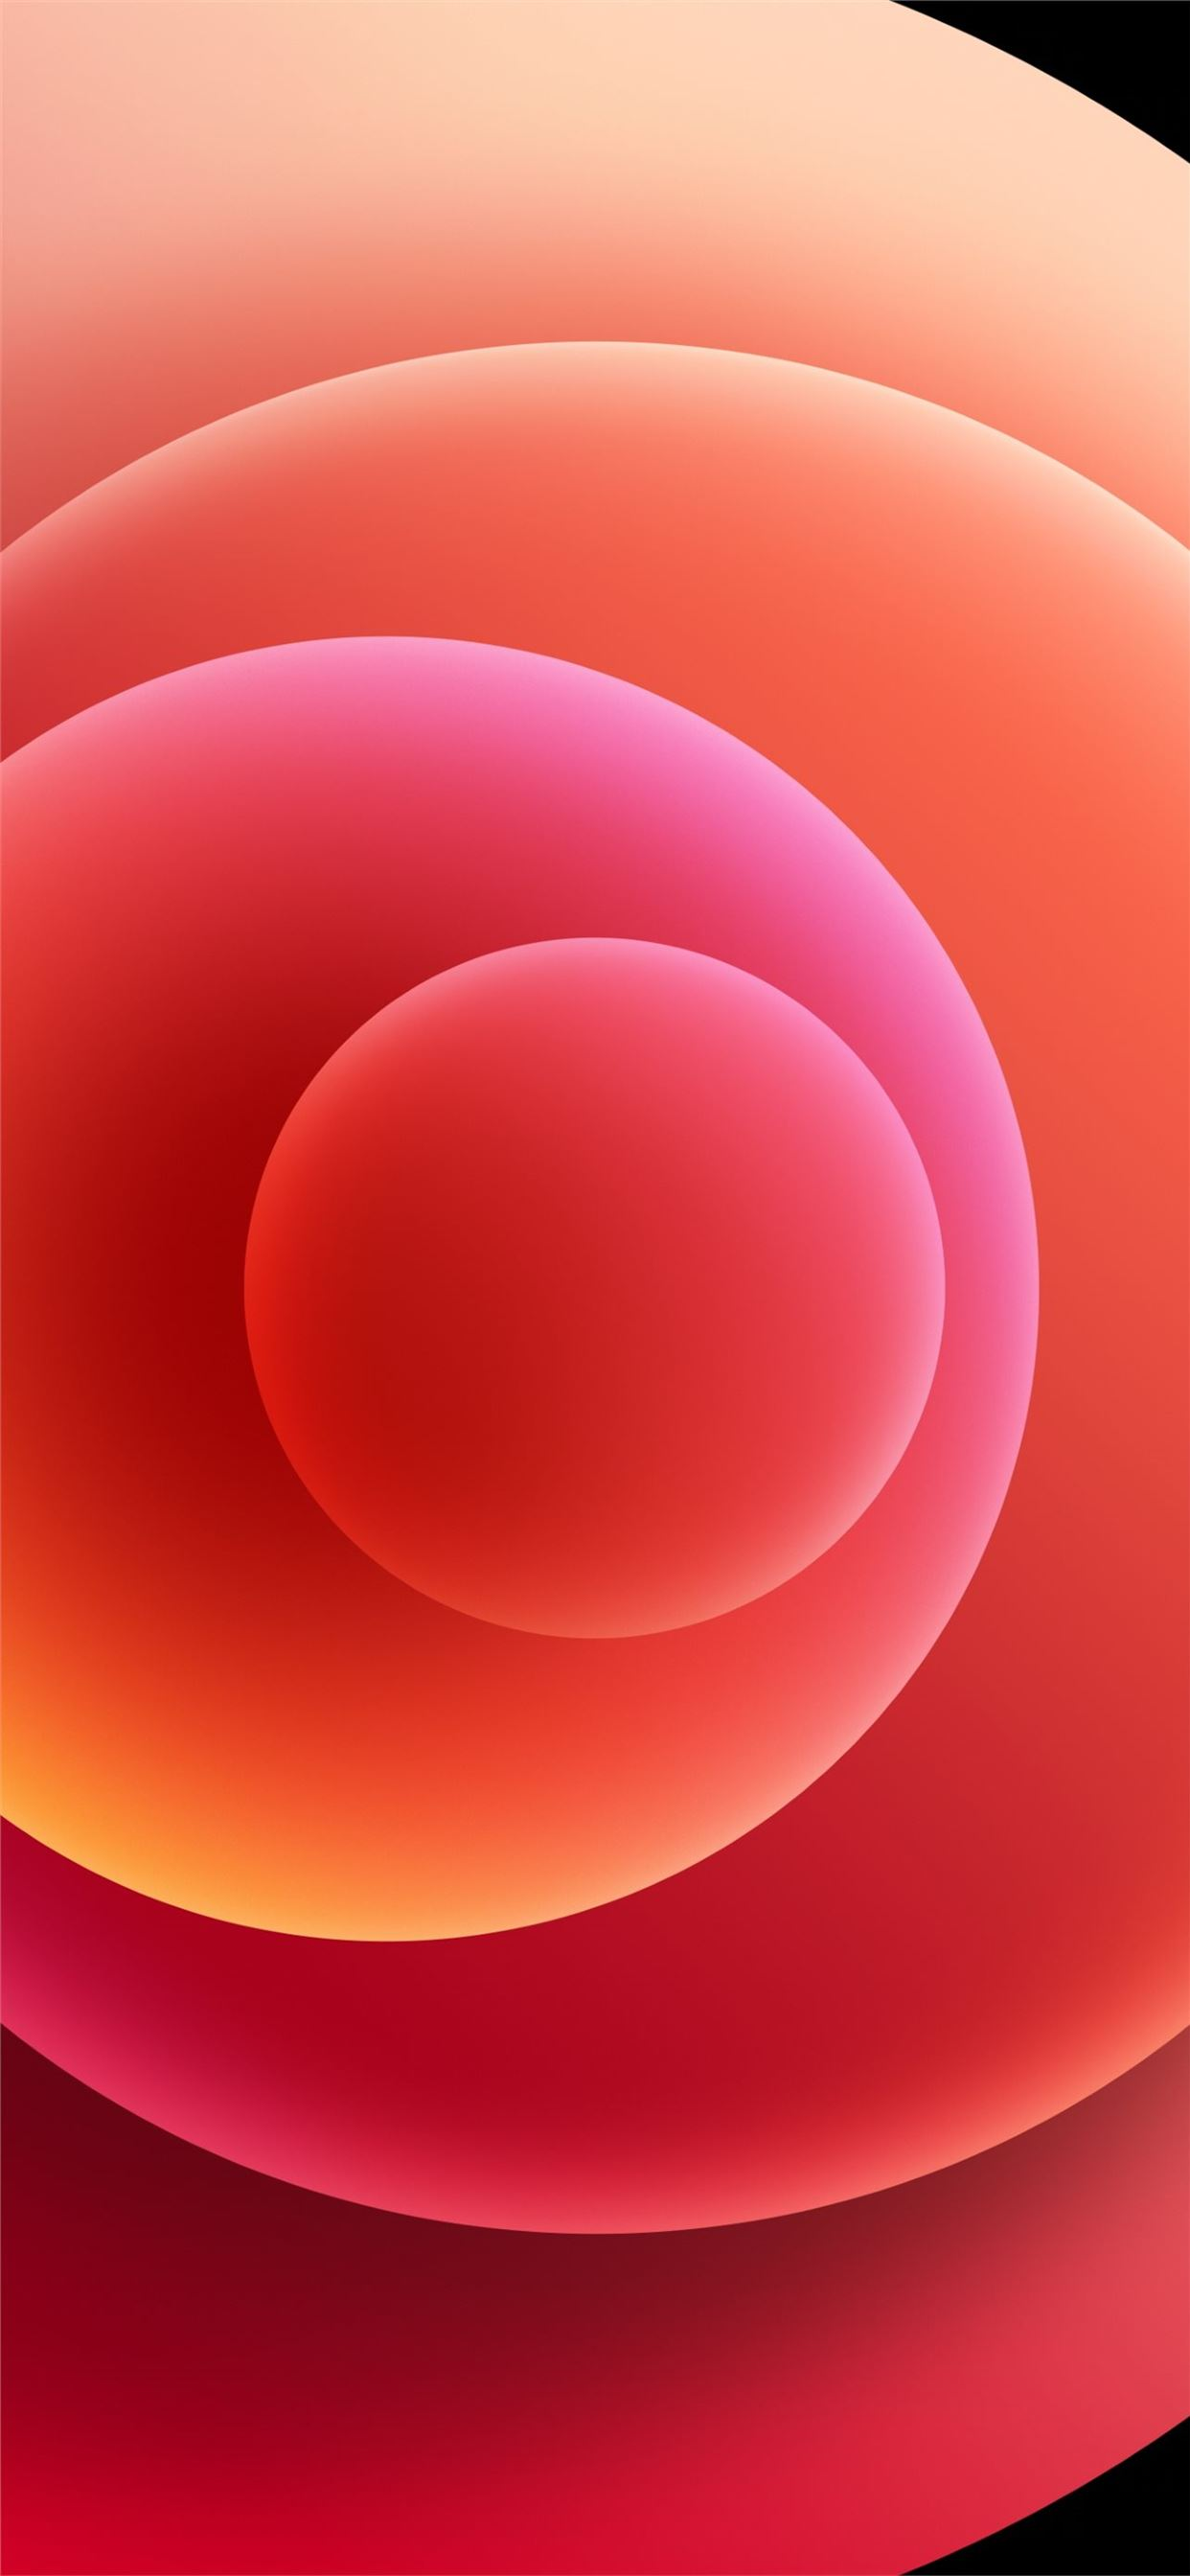 Colorful Iphone 12 Stock Wallpaper Orbs Red Light Iphone 11 Wallpapers Free Download